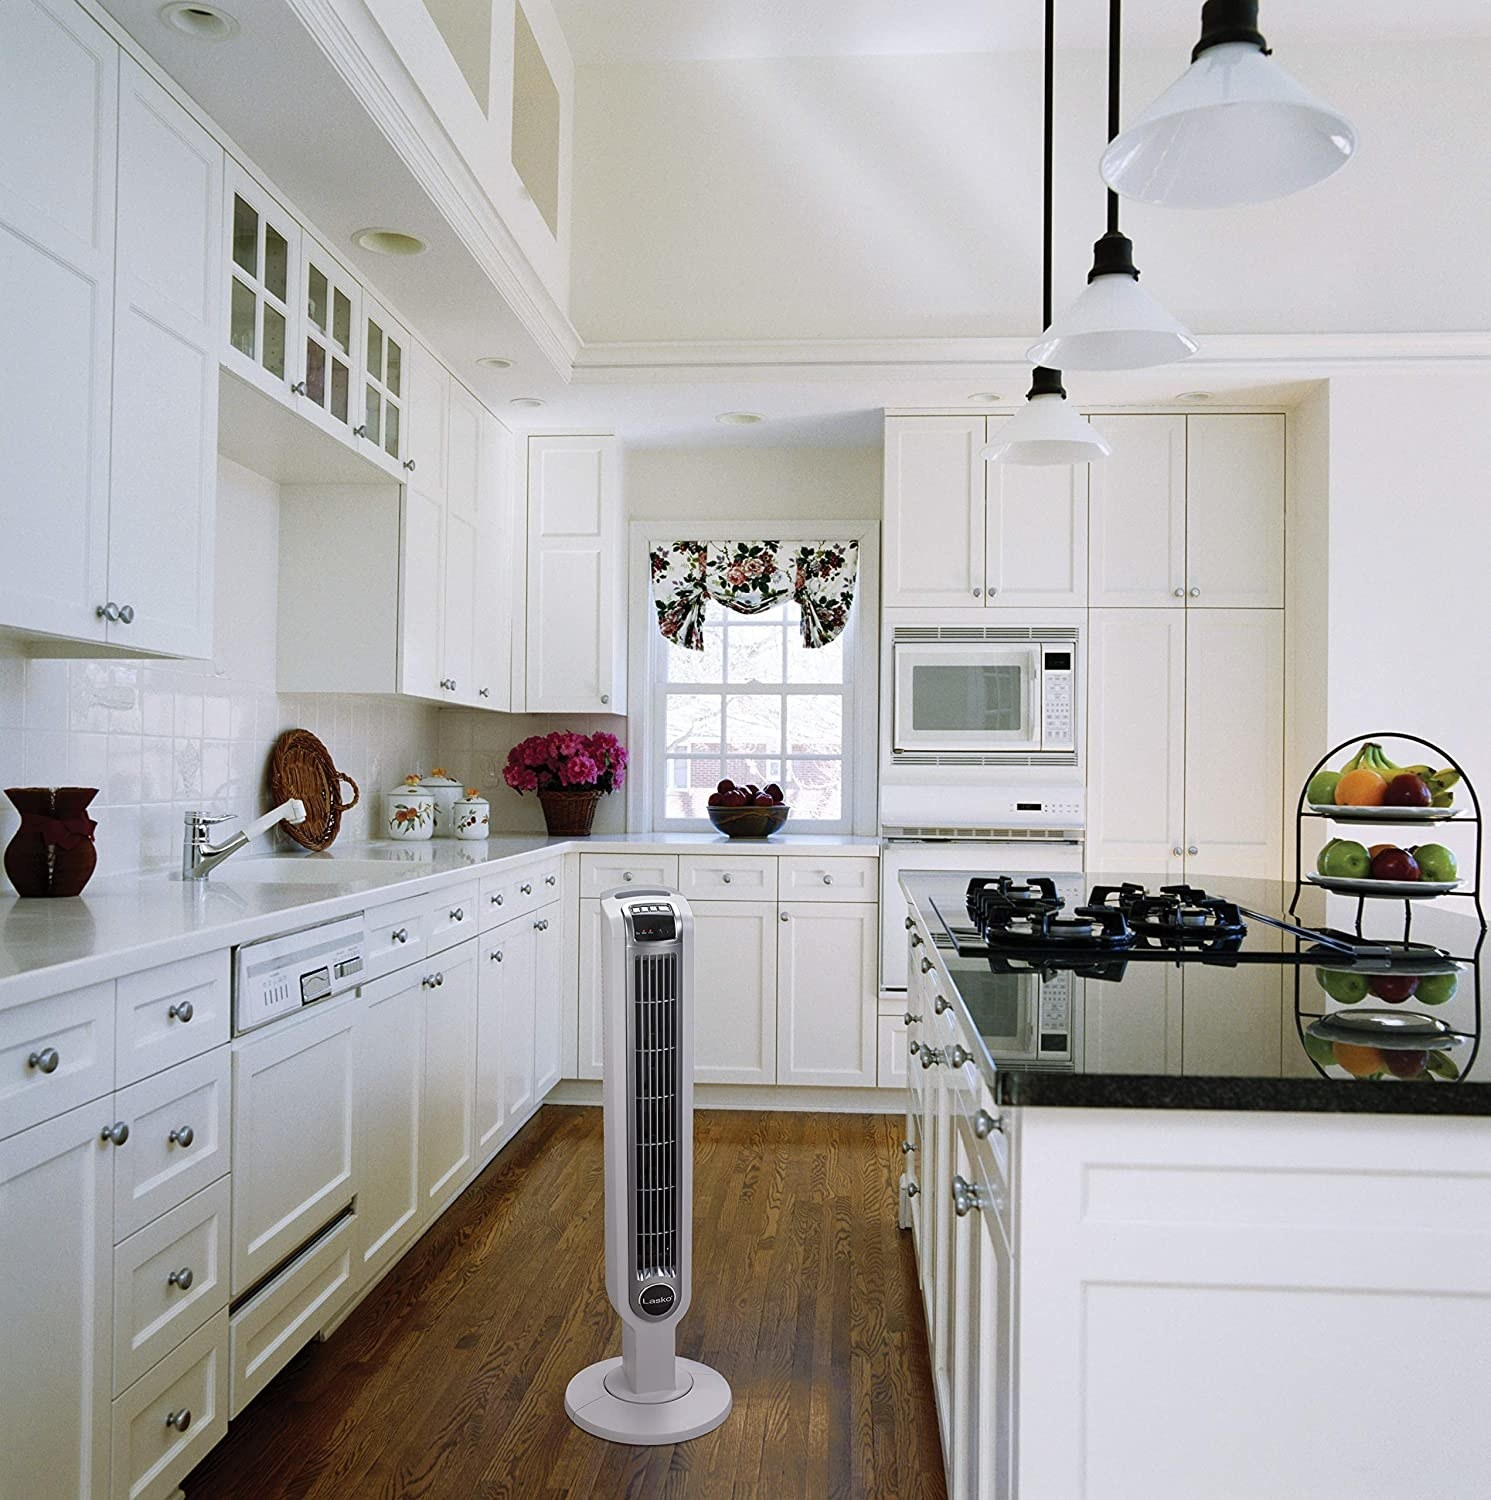 White oscillating tower fan placed in kitchen